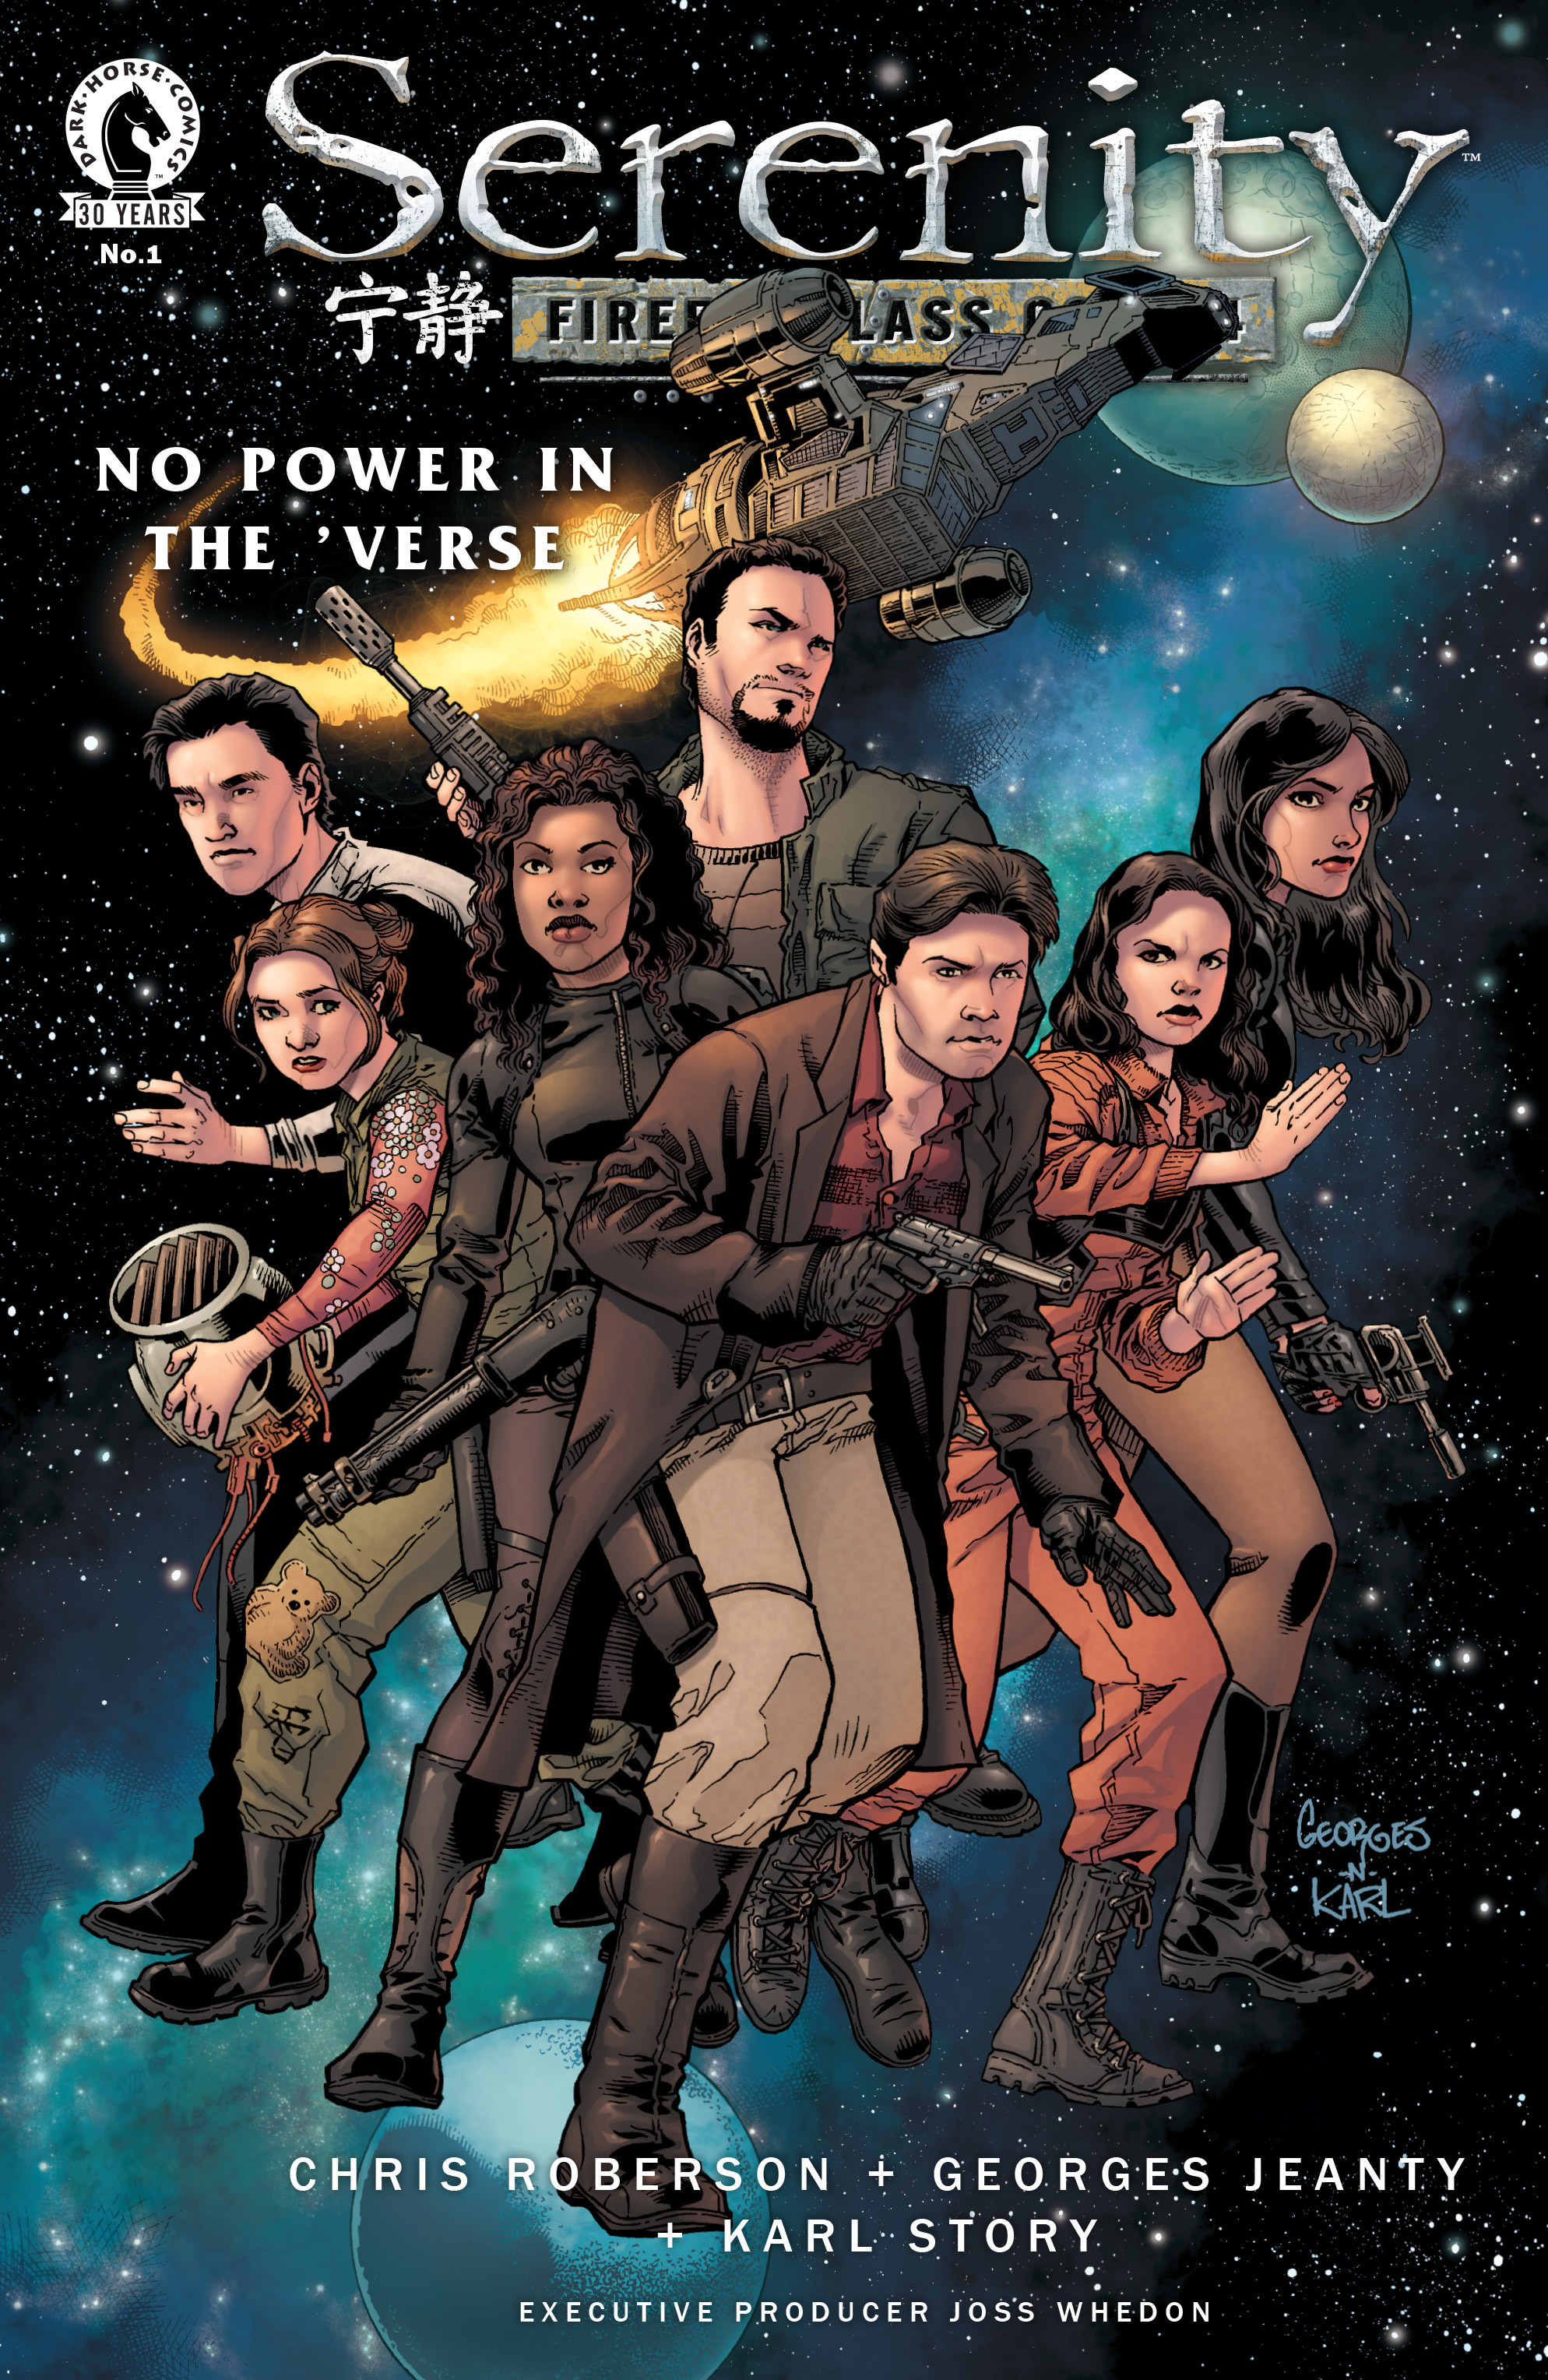 Read online Serenity: Firefly Class 03-K64 – No Power in the 'Verse comic -  Issue #1 - 2